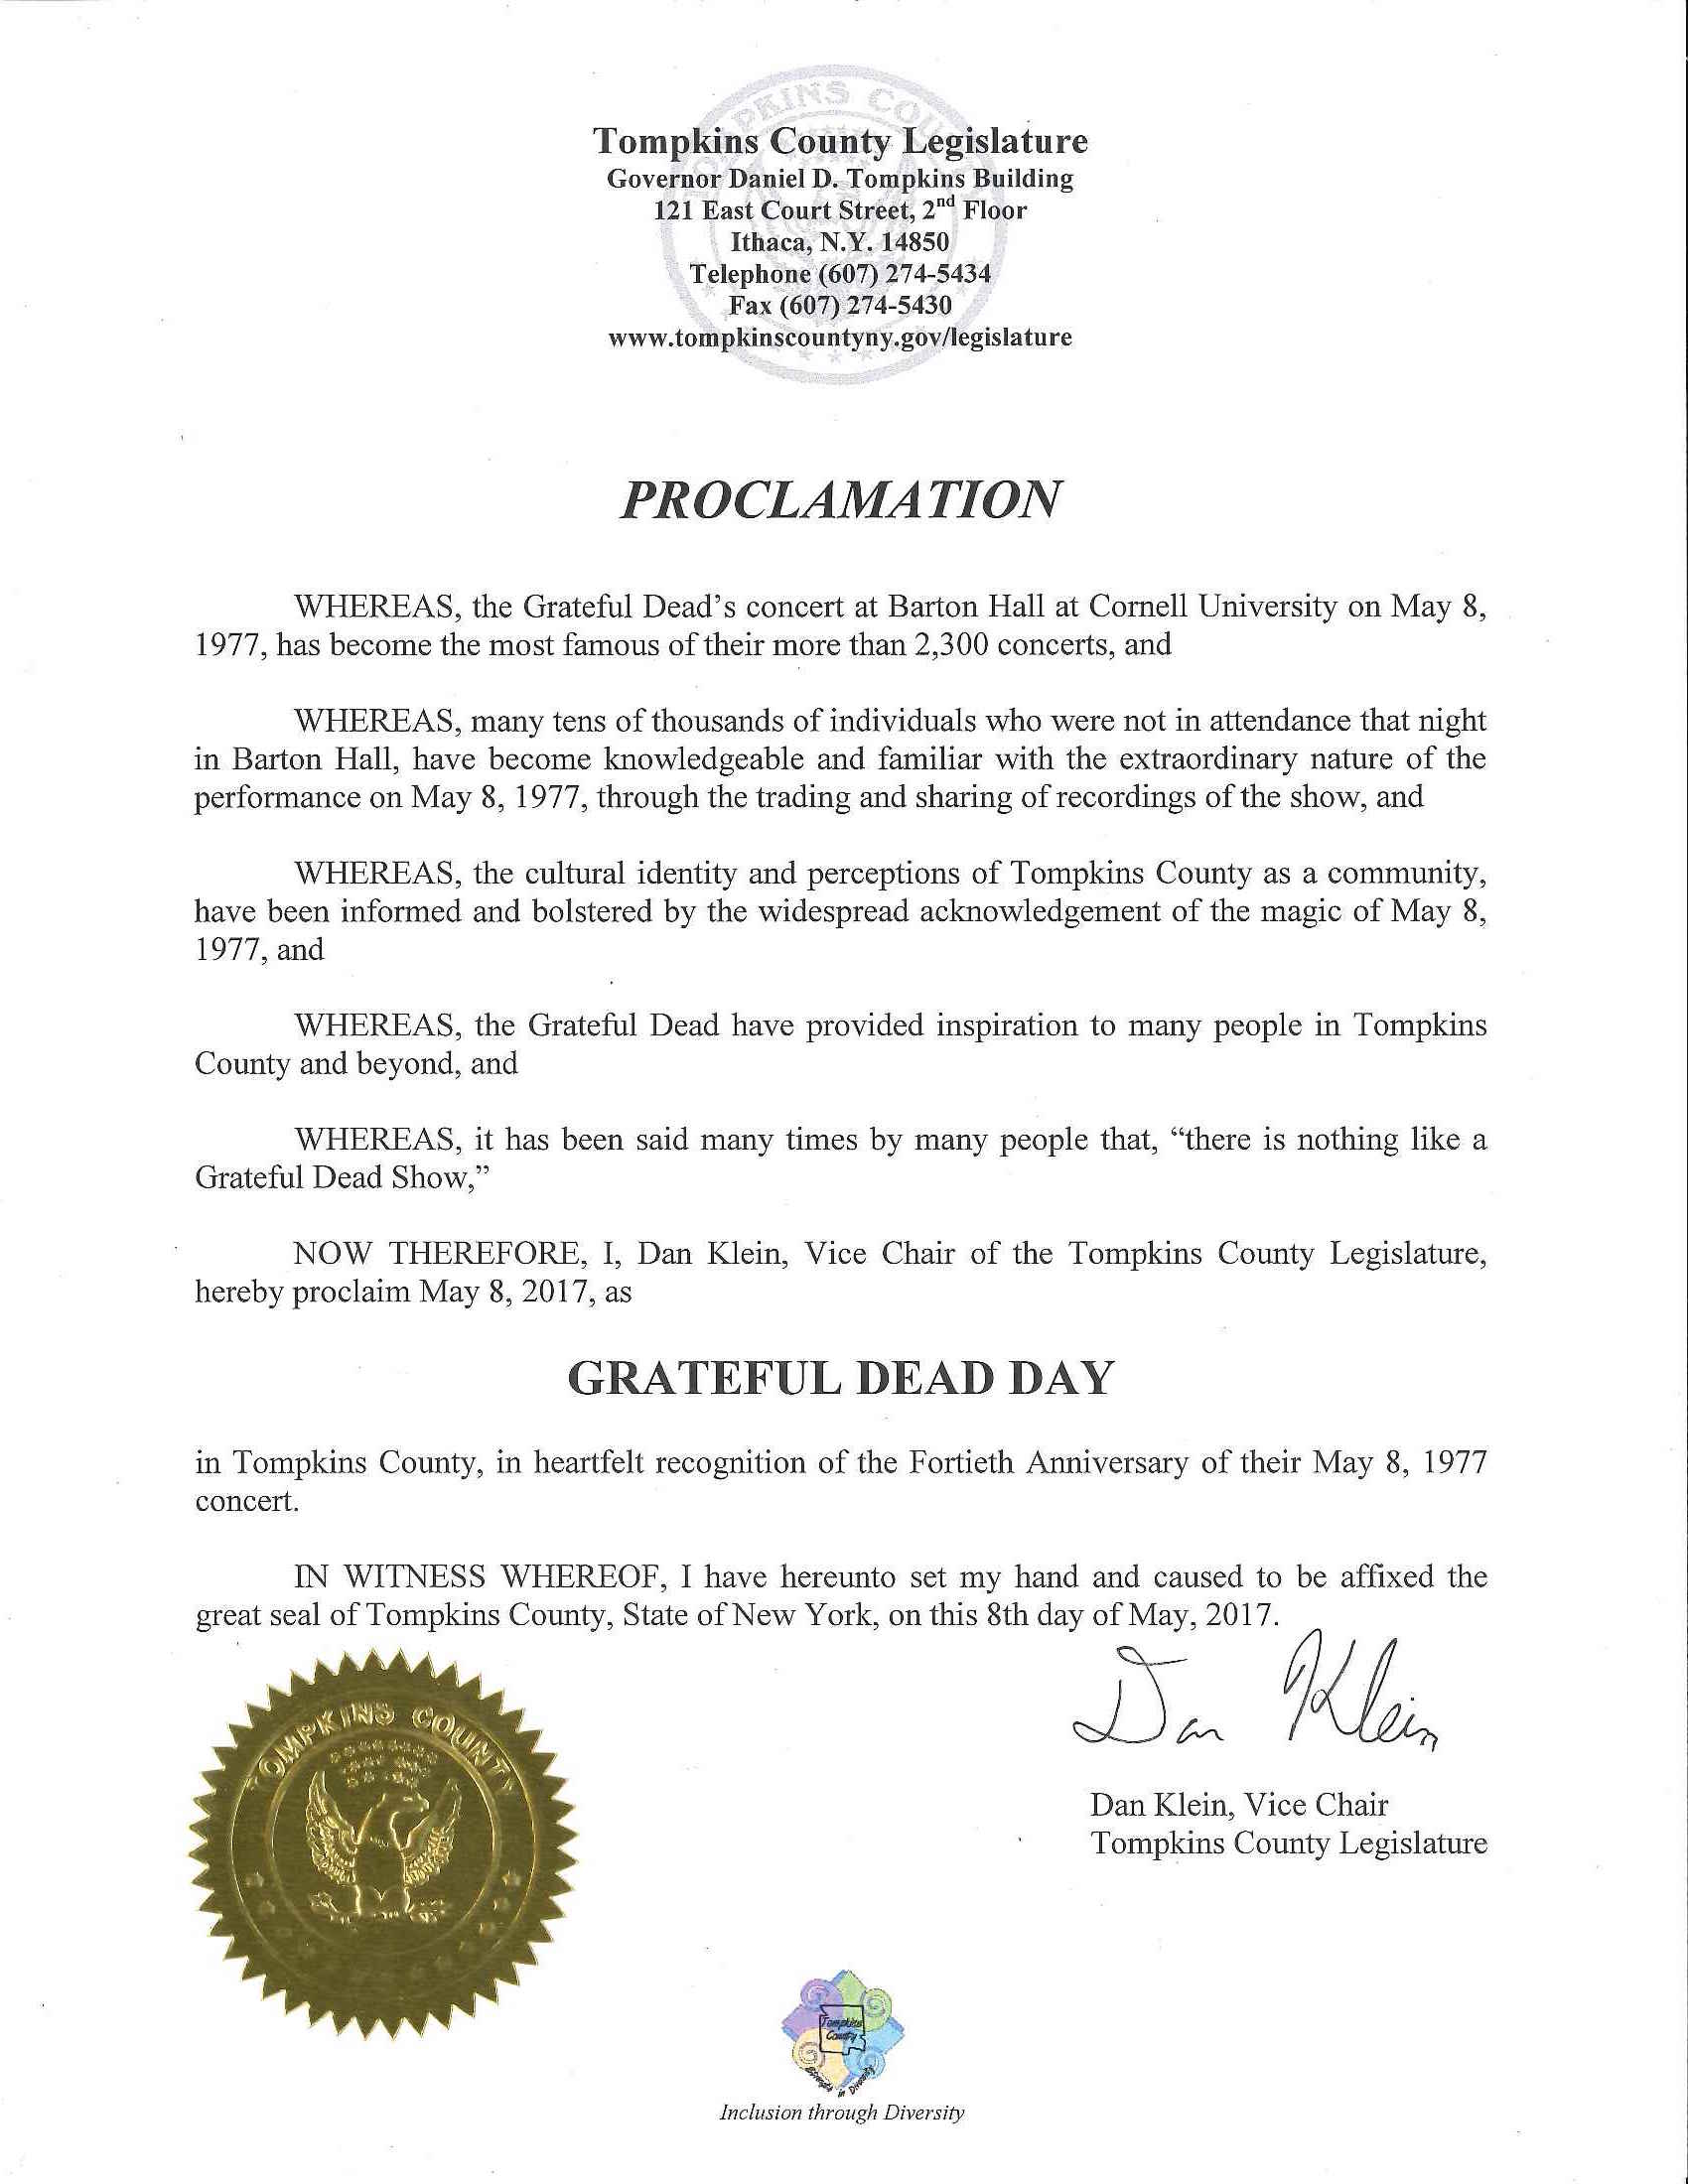 New york tompkins county ithaca 14850 - Tompkins County Legislature Proclaims May 8 2017 To Be Grateful Dead Day Sage House News The Cornell University Press Blog